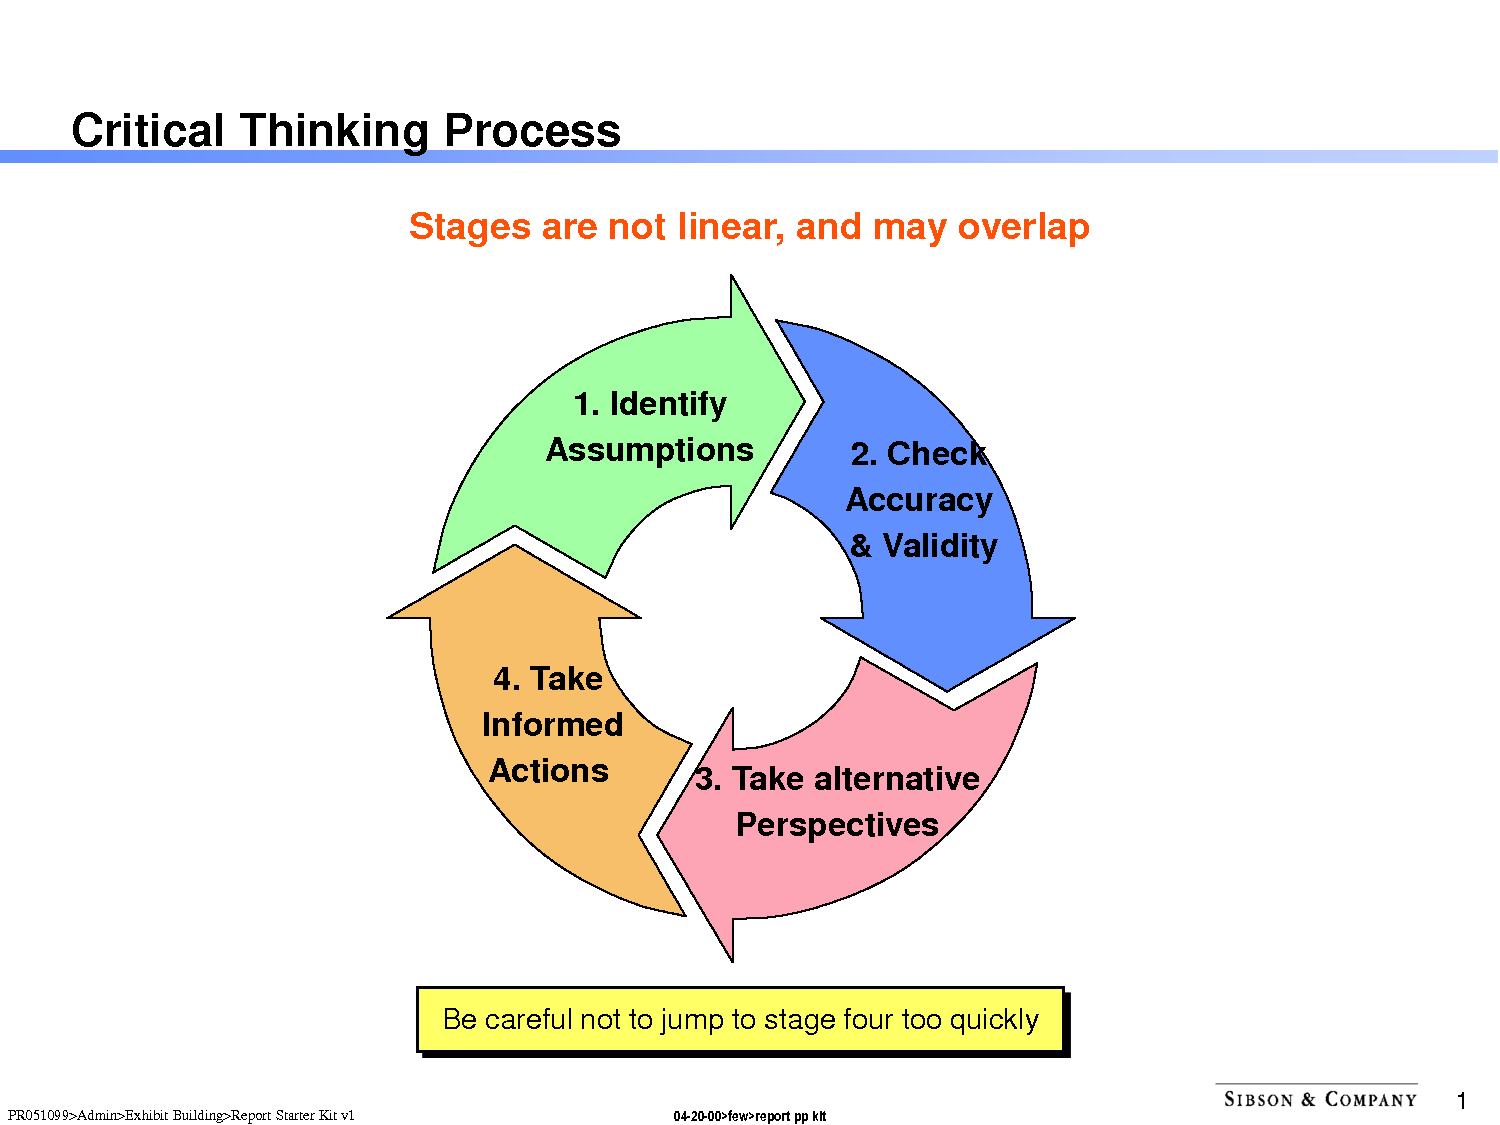 critical thinking psychology articles The following section of the site provides ideas for activities for developing critical thinking skills the activities are generally not designed to be used with a specific unit or topic but can be adapted to fit any part of the course.